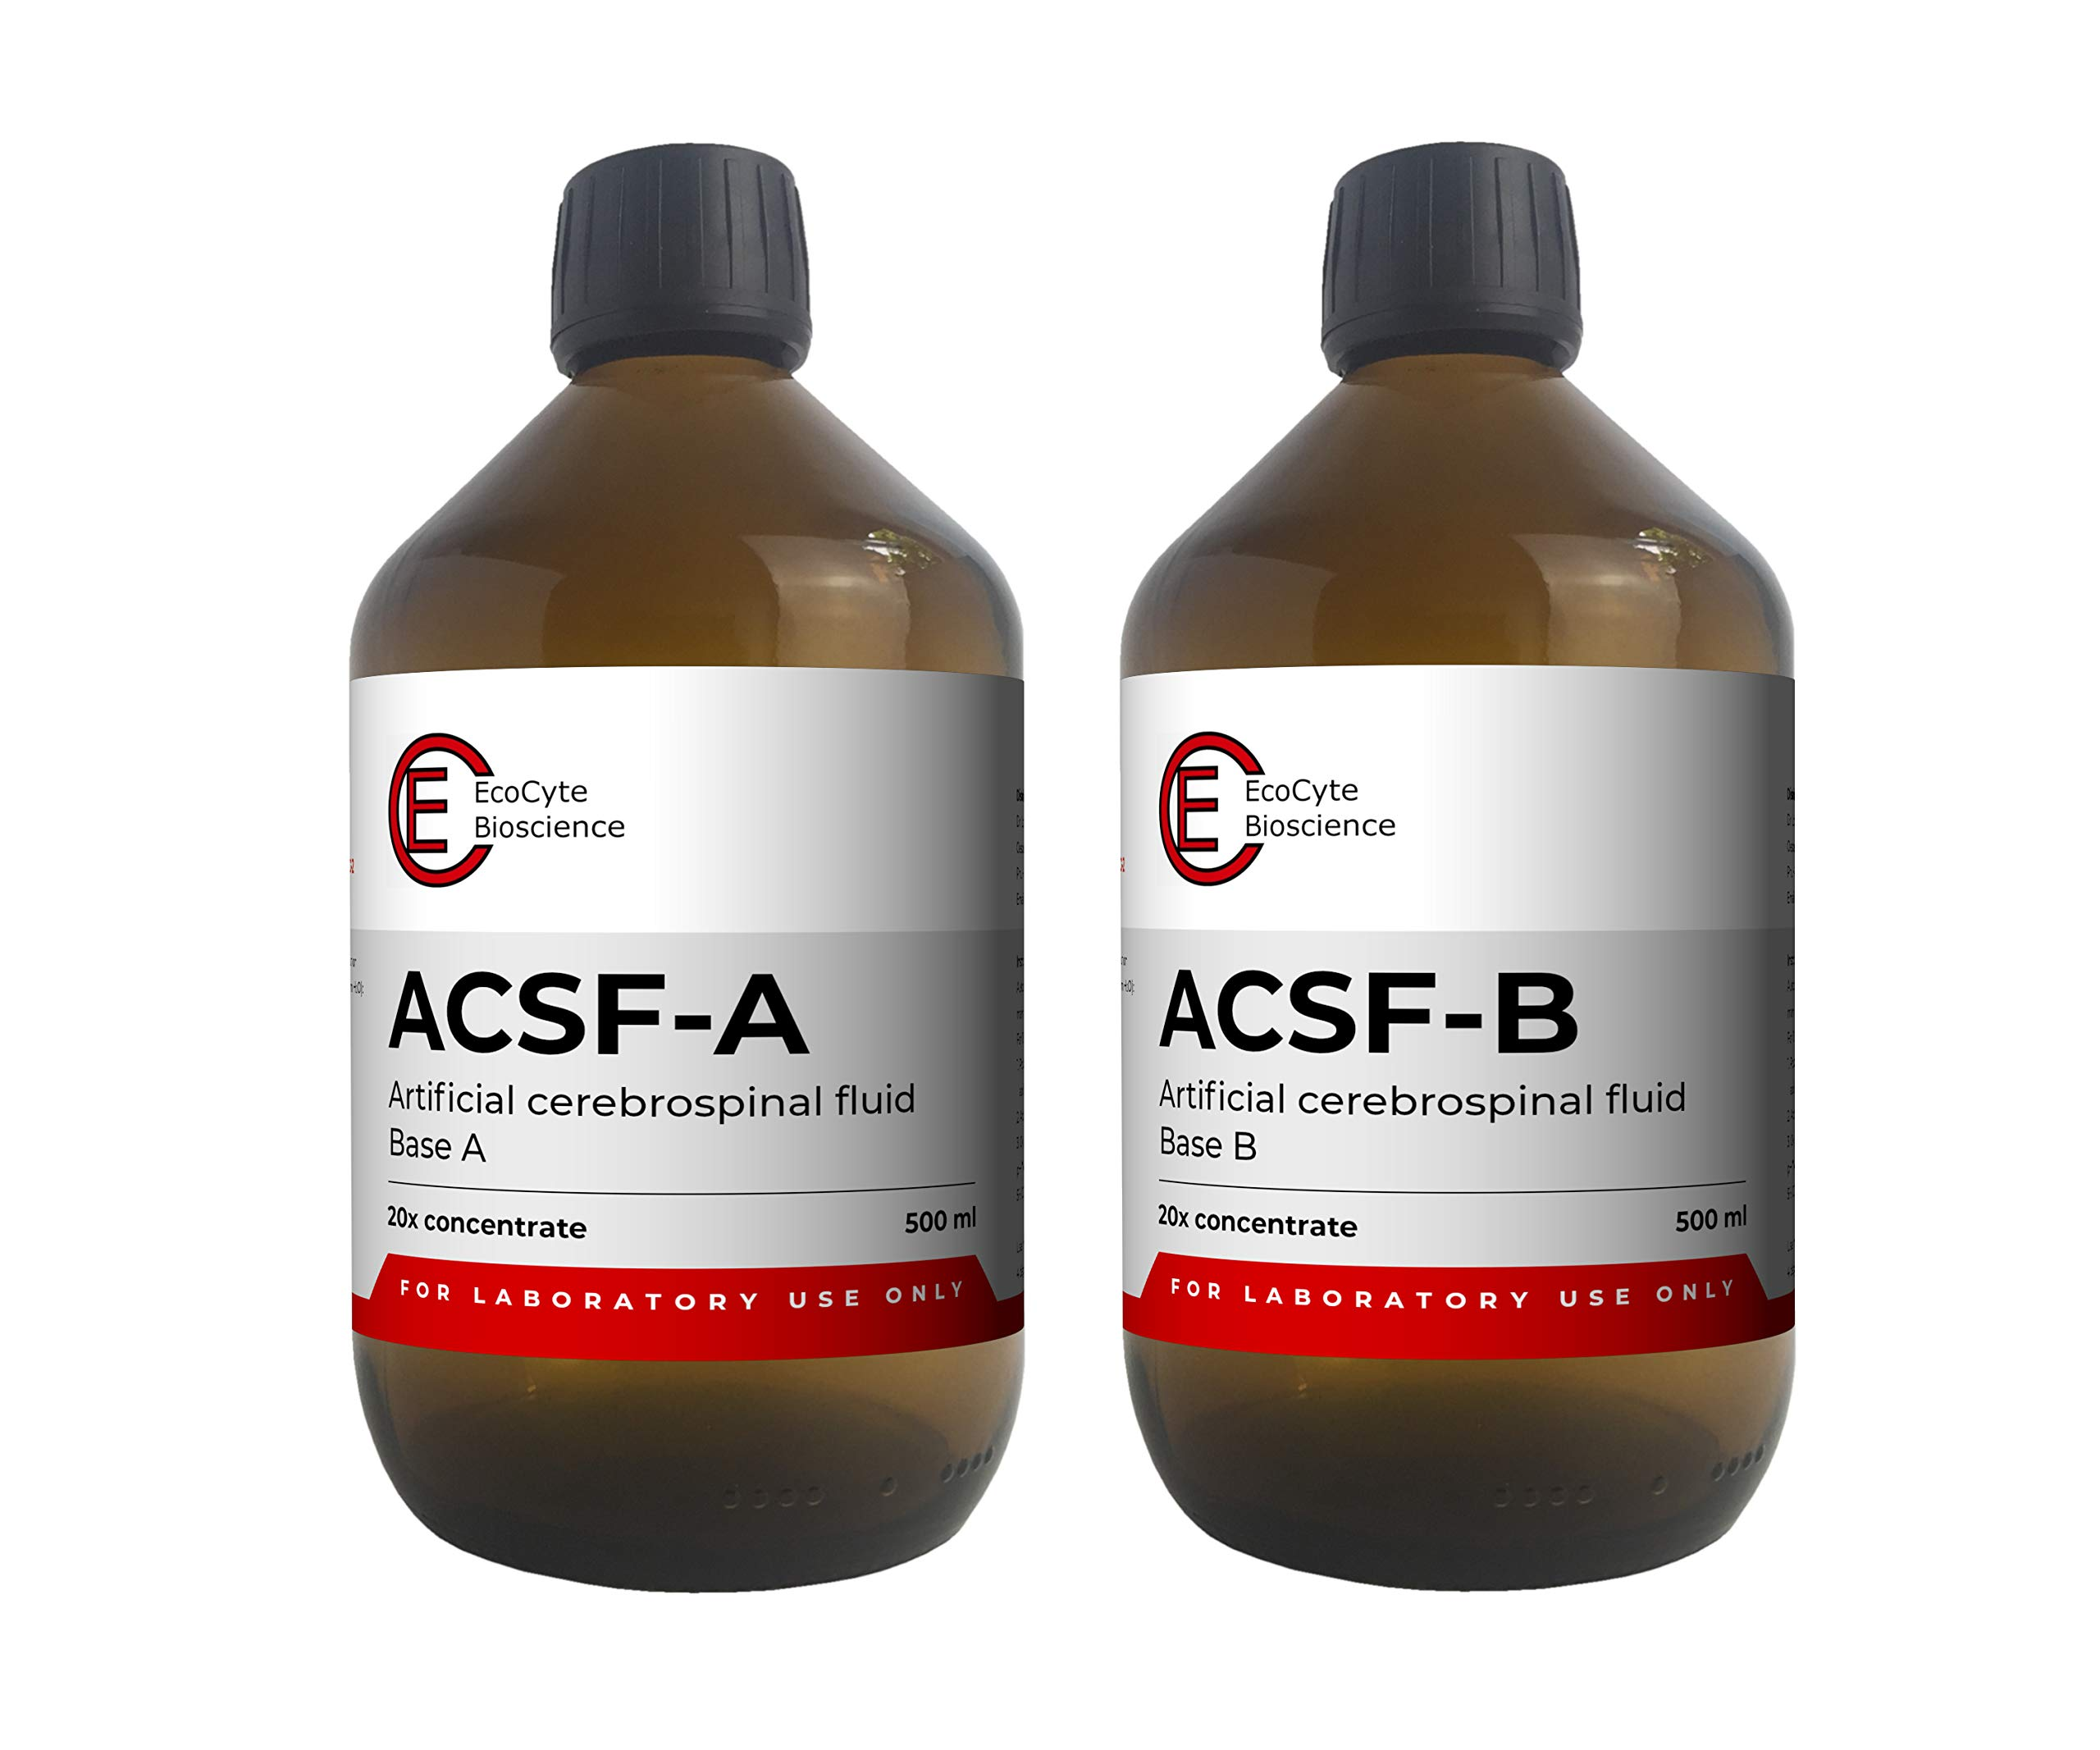 ACSF - Artificial Cerebrospinal Fluid (1000 ml) - 20x concentrate for Electrophysiology